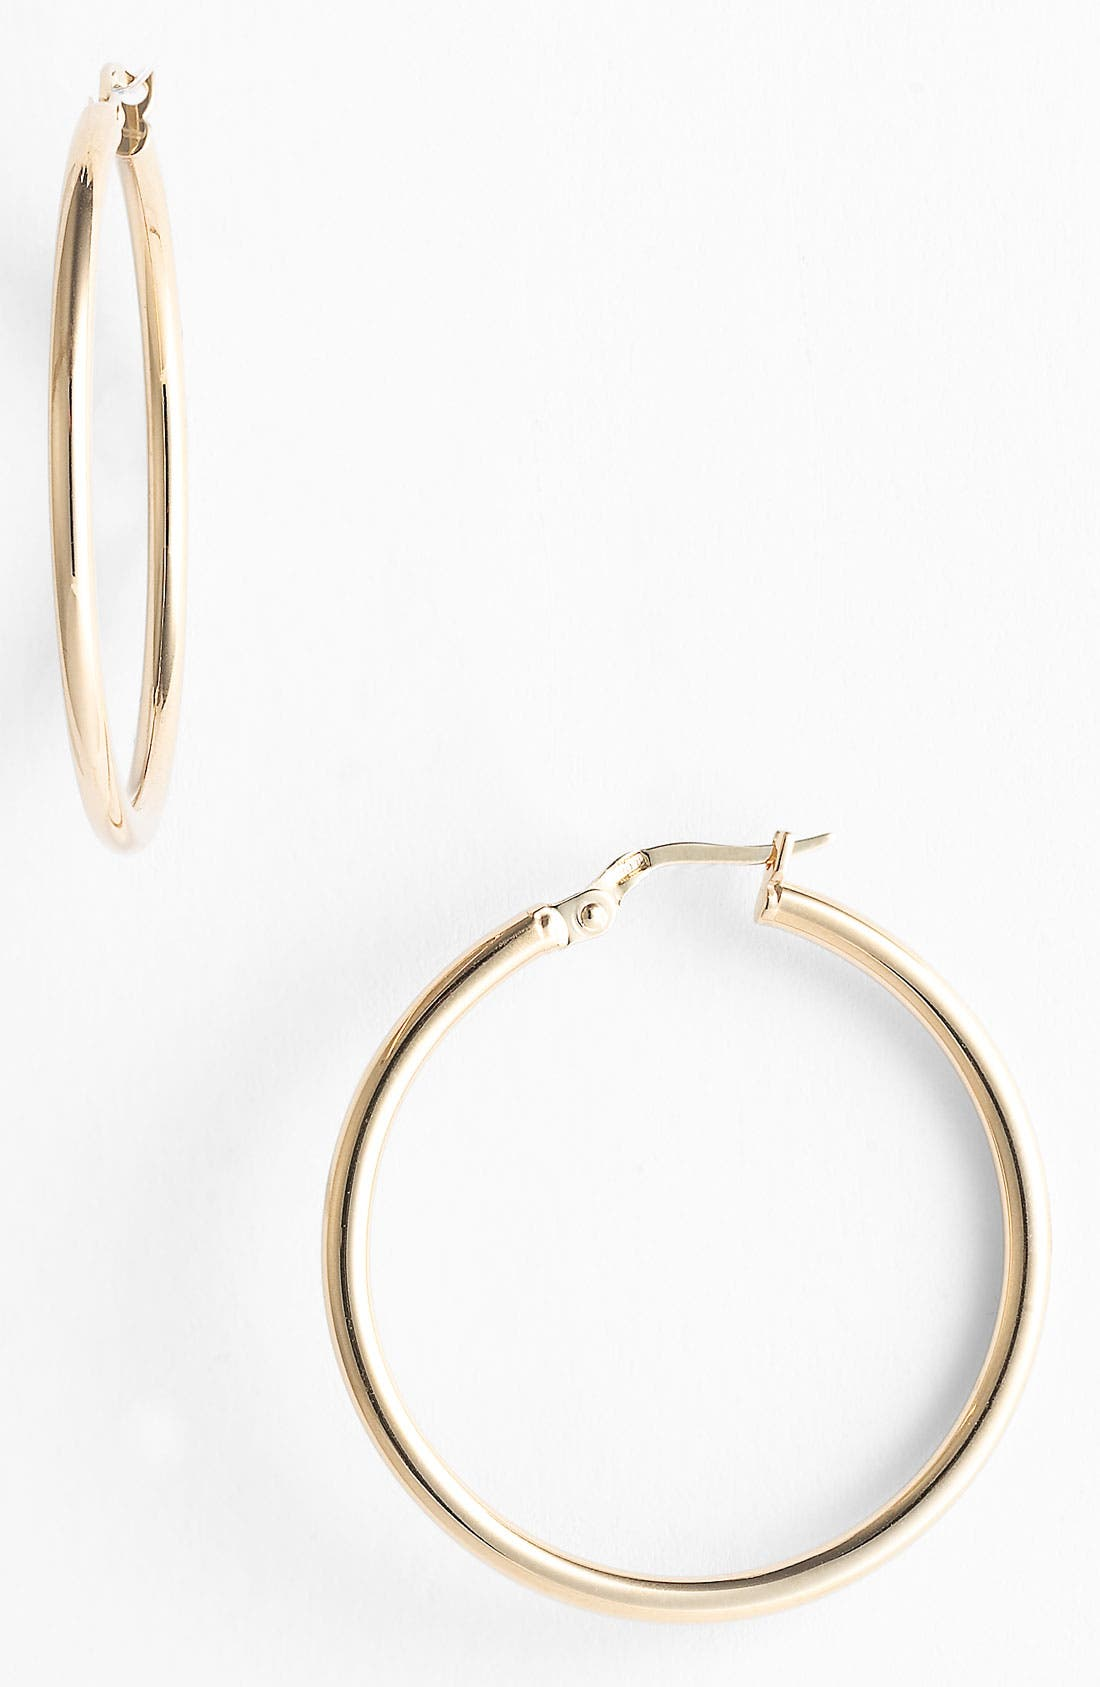 Main Image - Roberto Coin 35mm Gold Hoop Earrings